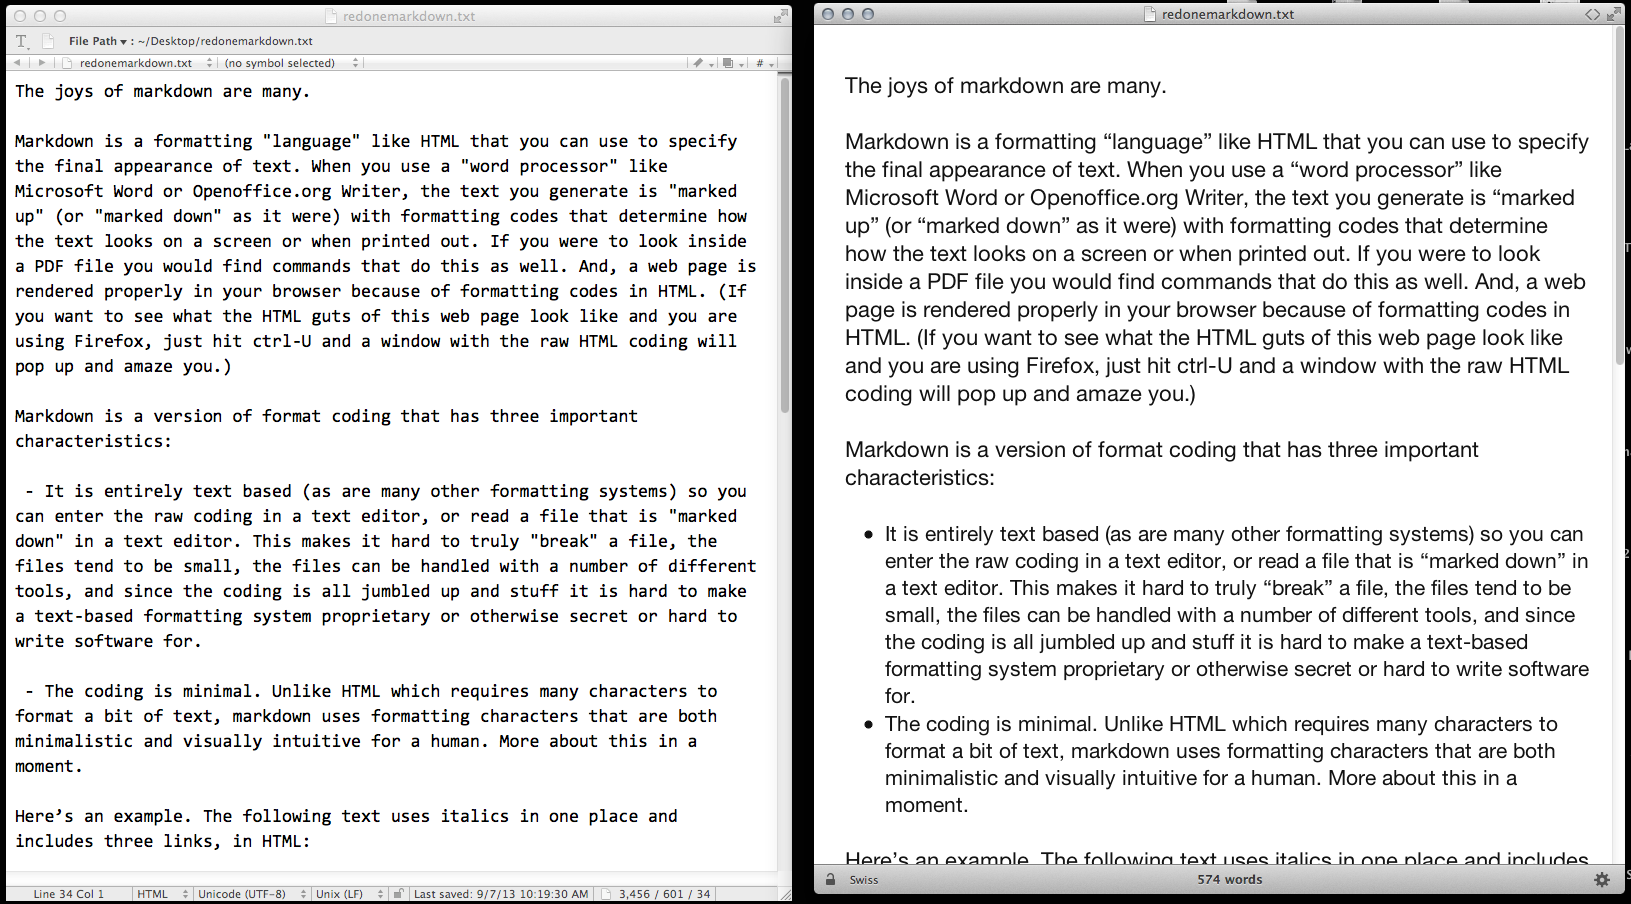 What is Markdown and why use it? | ScienceBlogs